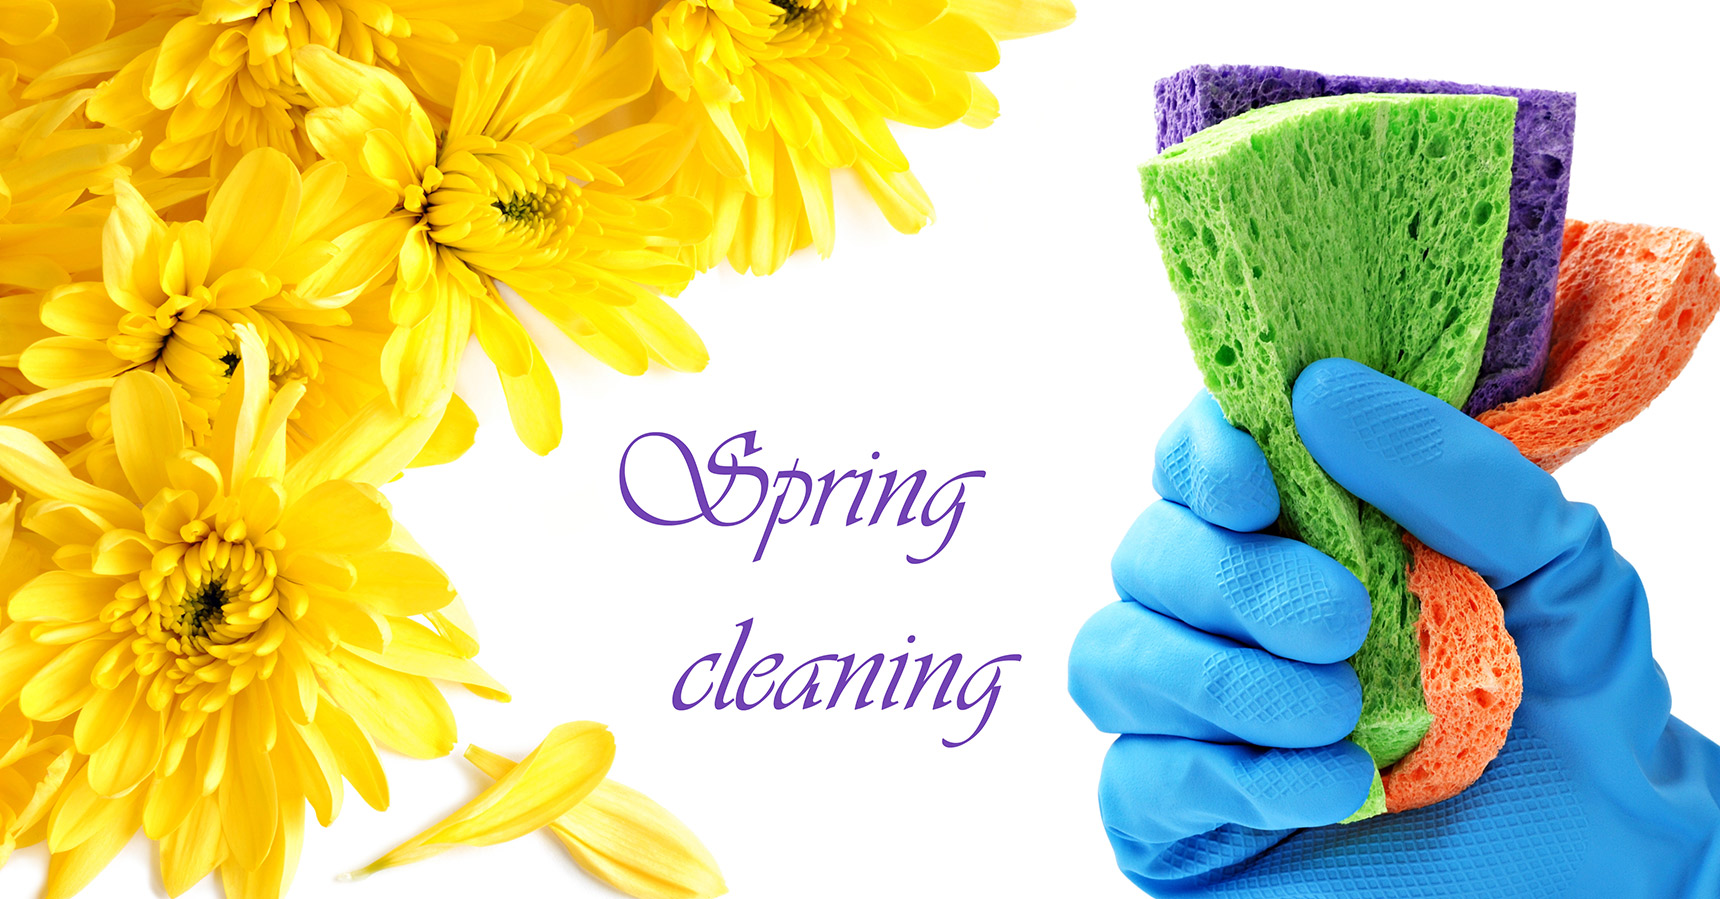 One-off spring cleaning service London